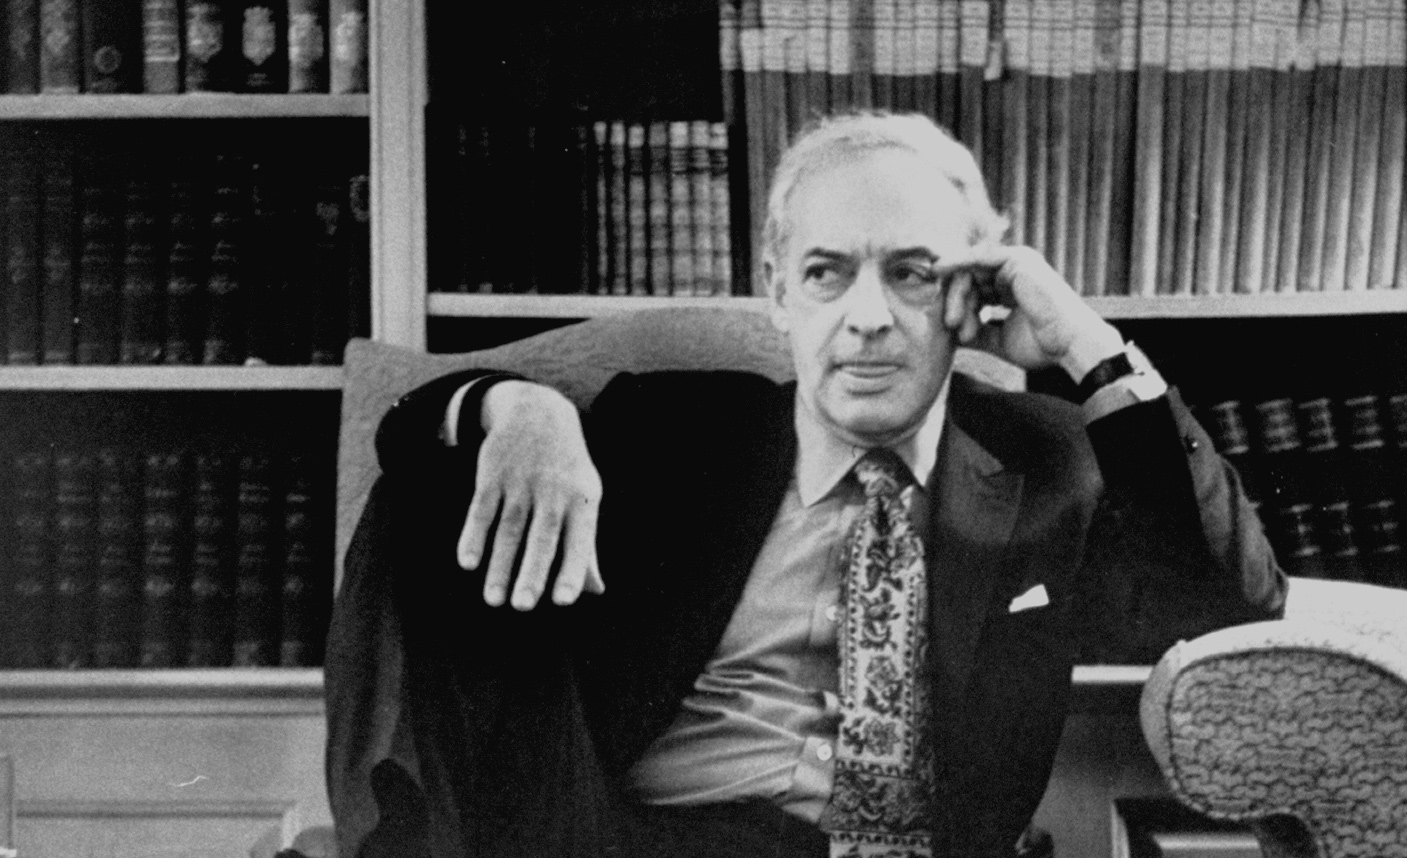 Saul Bellow in 1970. Art Rickerby/The LIFE Picture Collection via Getty Images.